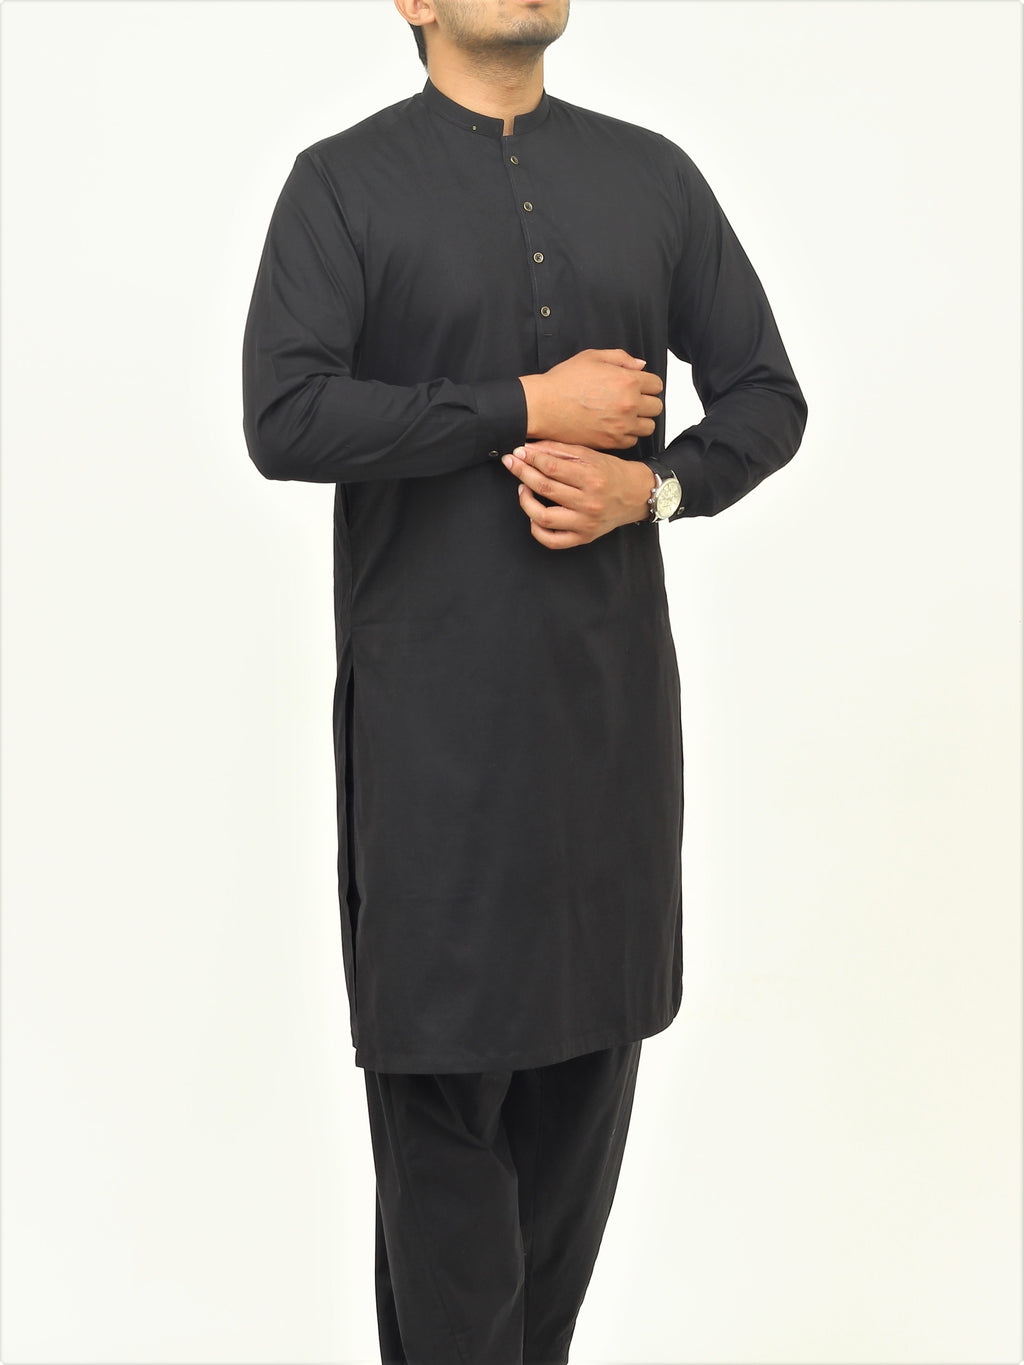 Simply Black - Shalwar Qameez Liquid Finish